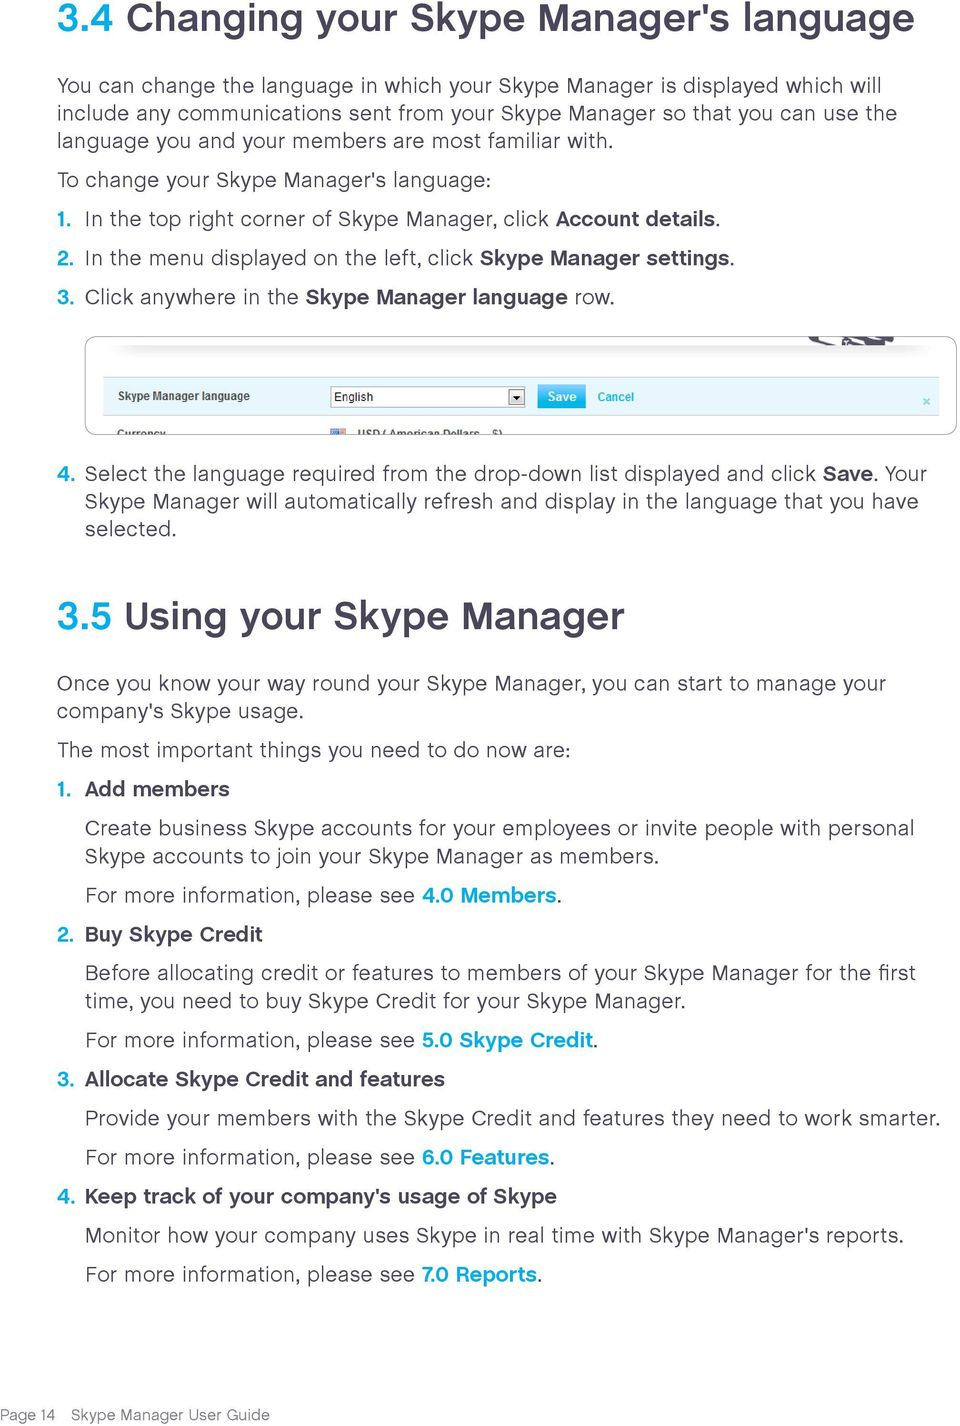 In the menu displayed on the left, click Skype Manager settings. 3. Click anywhere in the Skype Manager language row. 4. Select the language required from the drop-down list displayed and click Save.